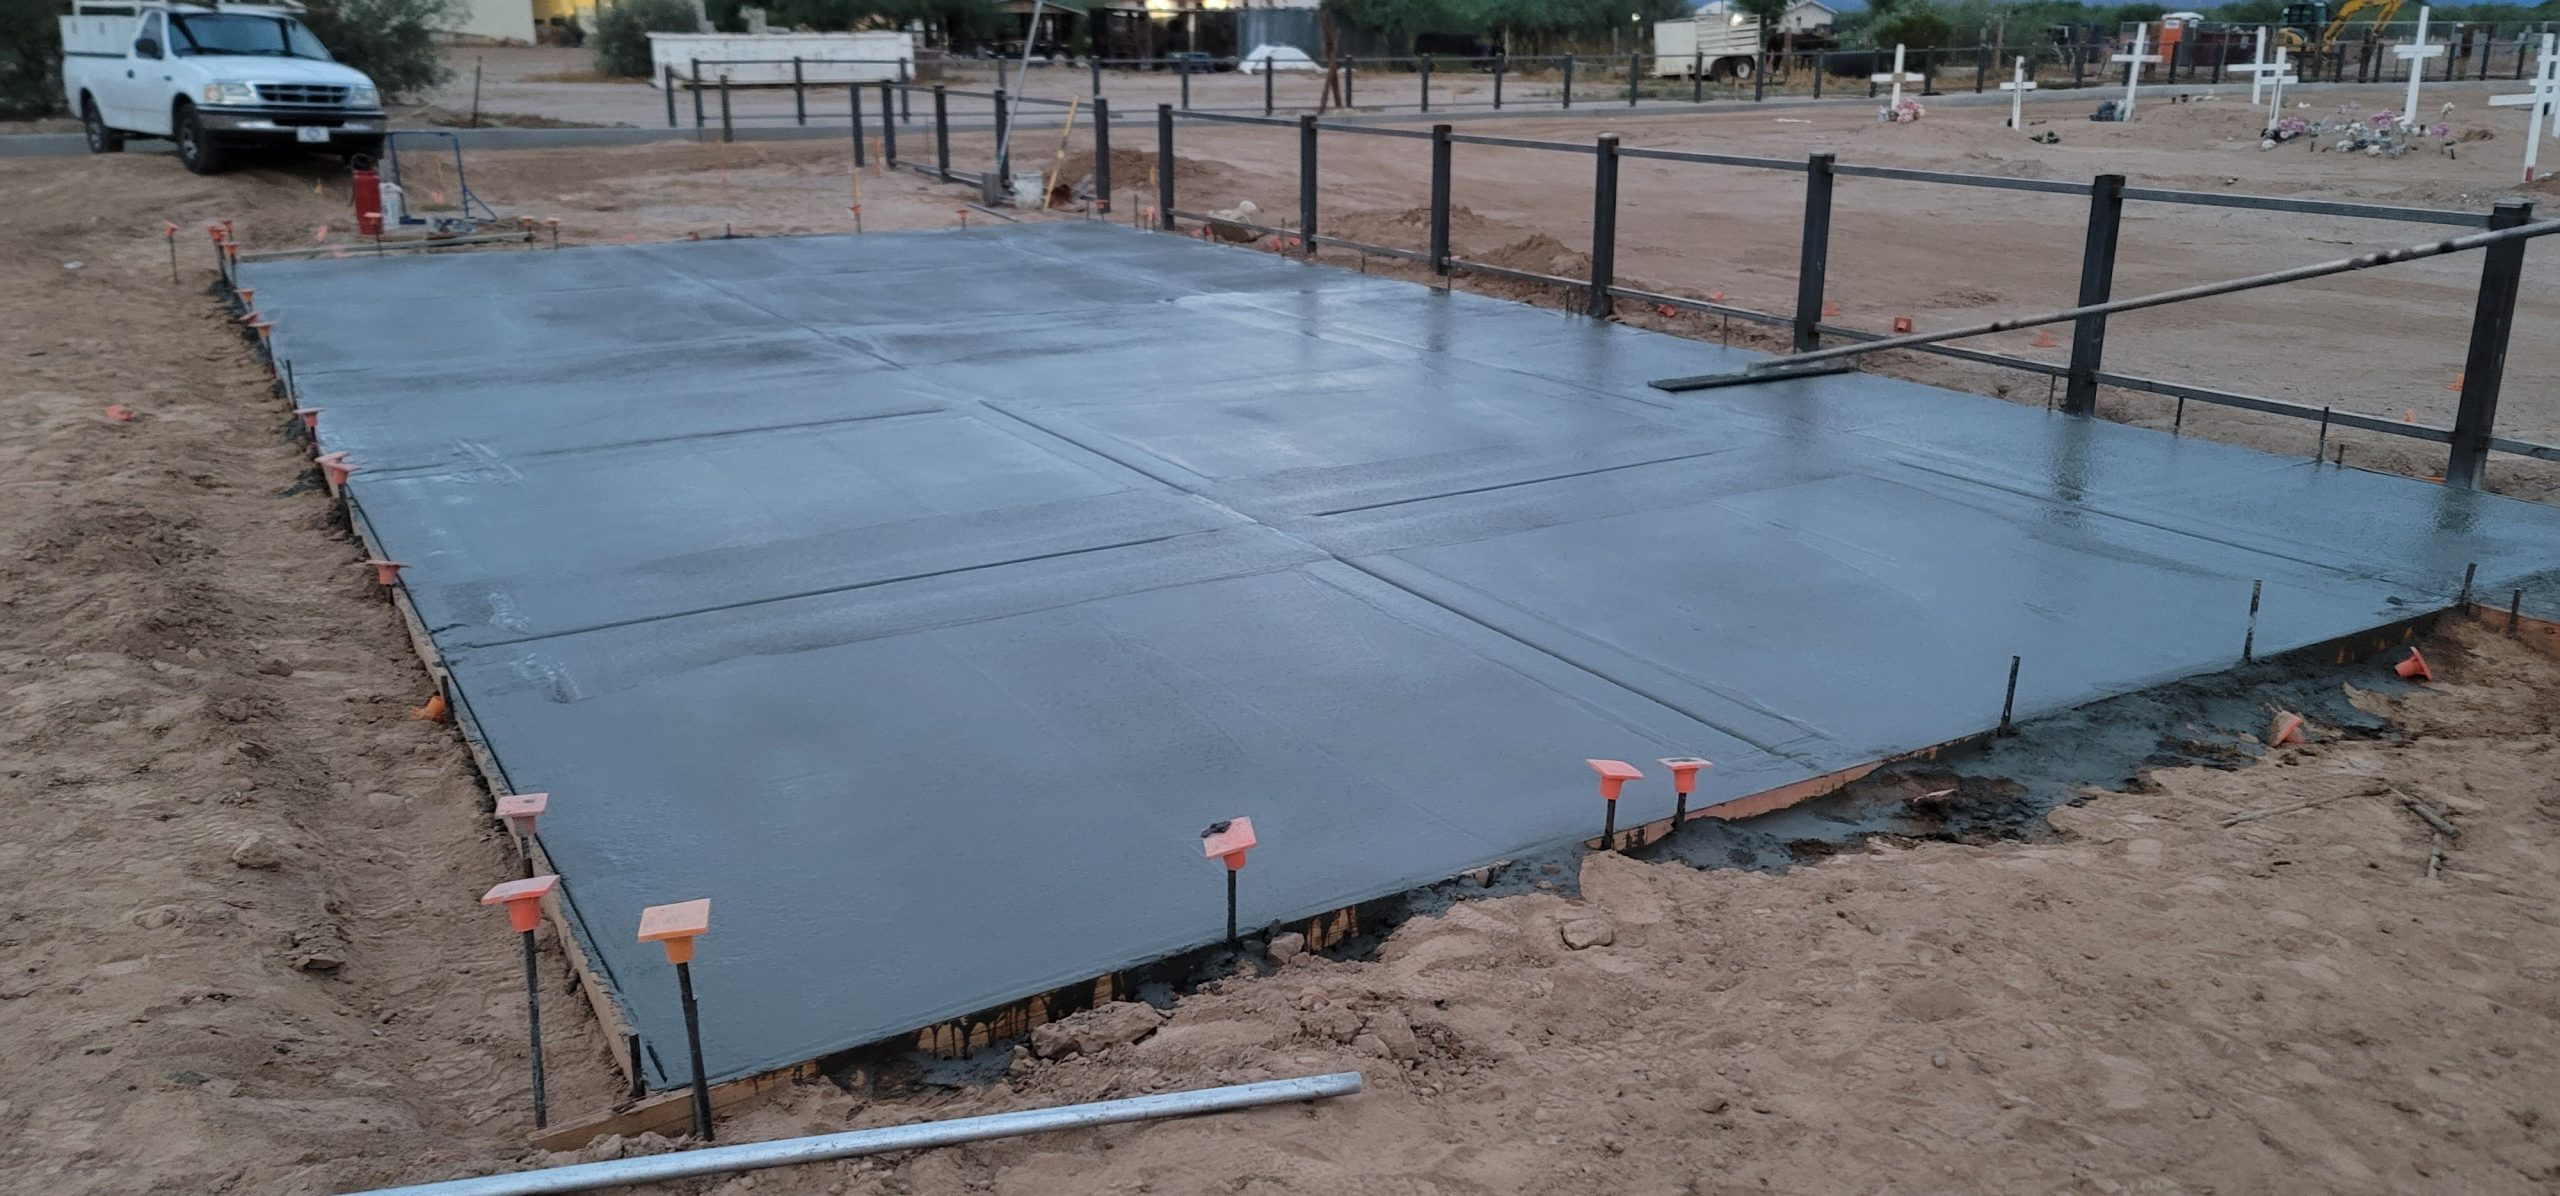 Handicap Pads and Access Ramps